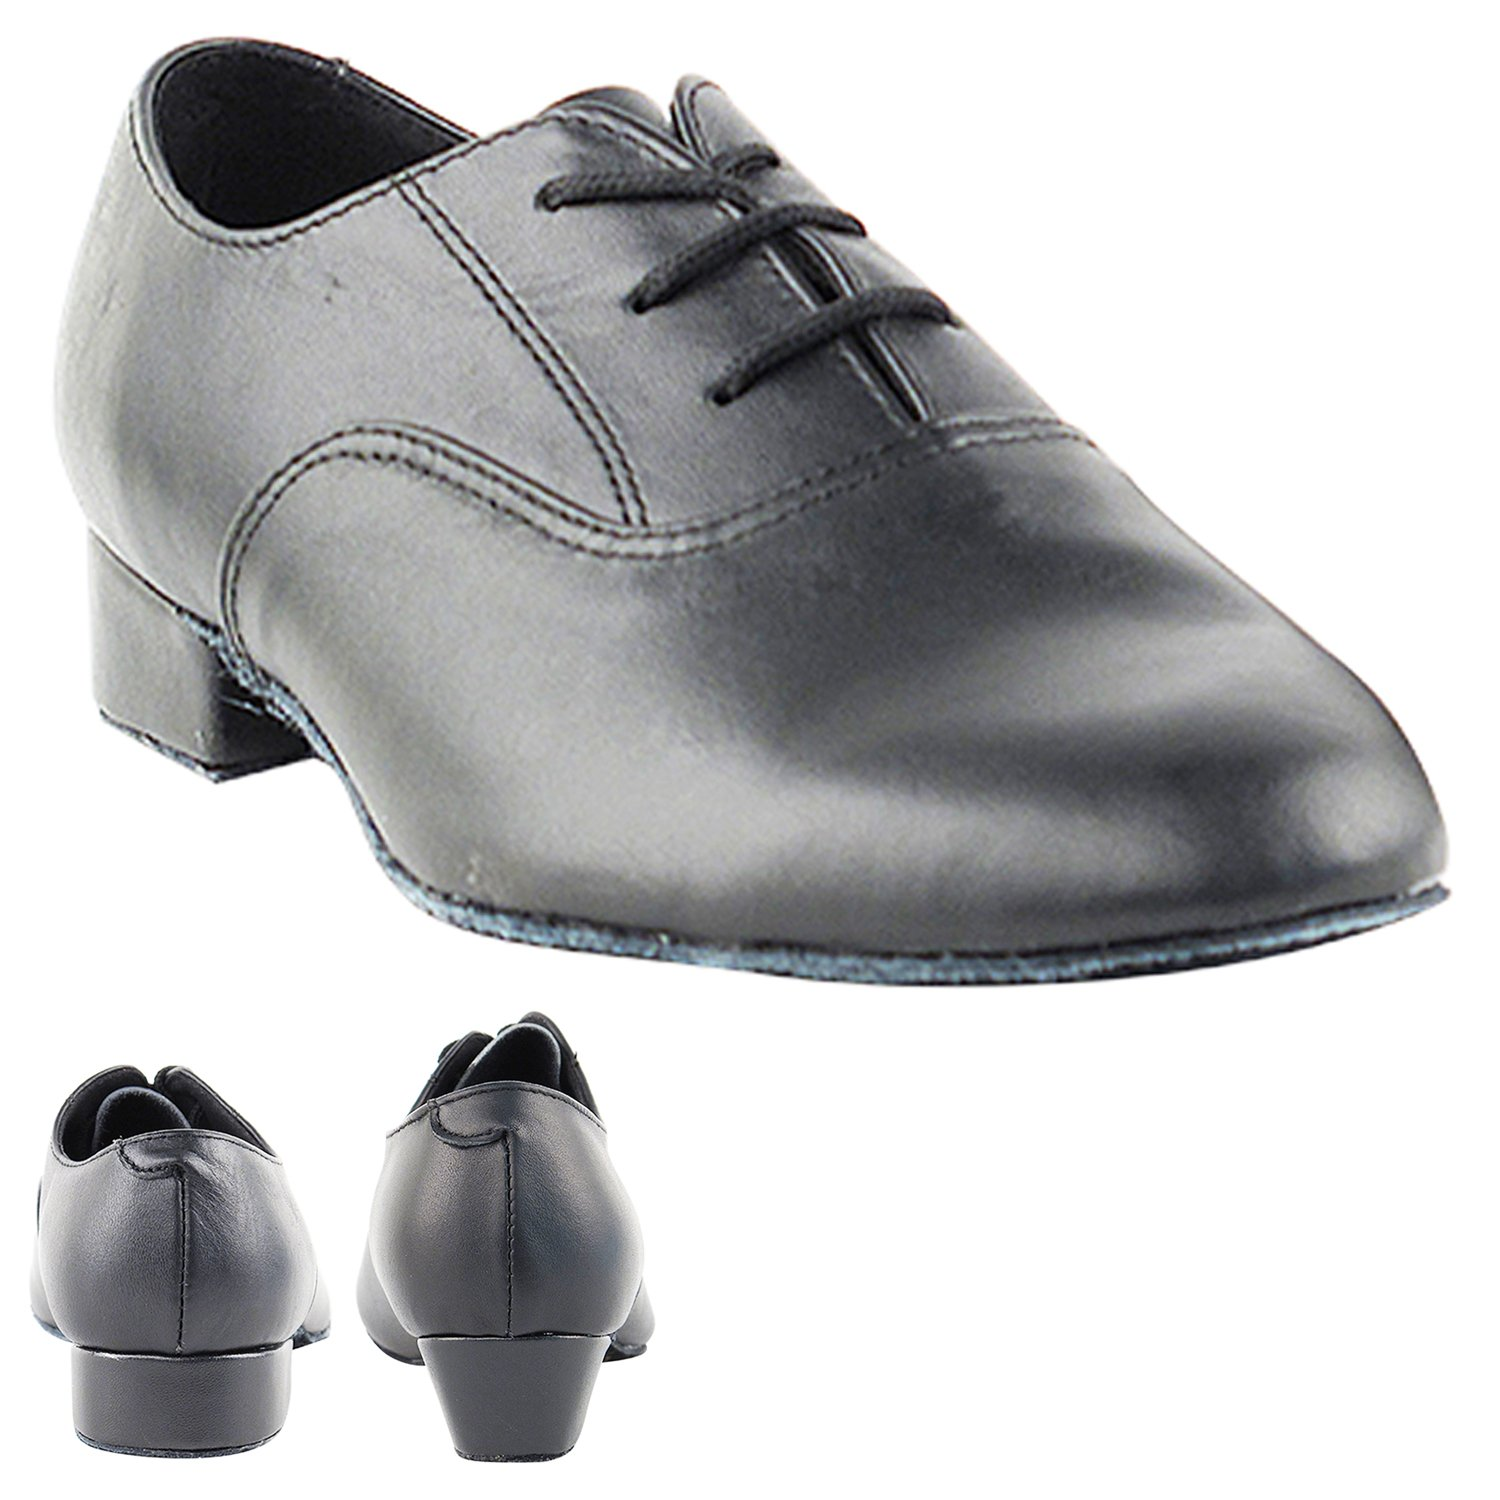 50 Shades Boys Dance Shoes: Ballroom/Latin/Salsa/Swing/Smooth/Theater Art (1 & 1.5 Heel)